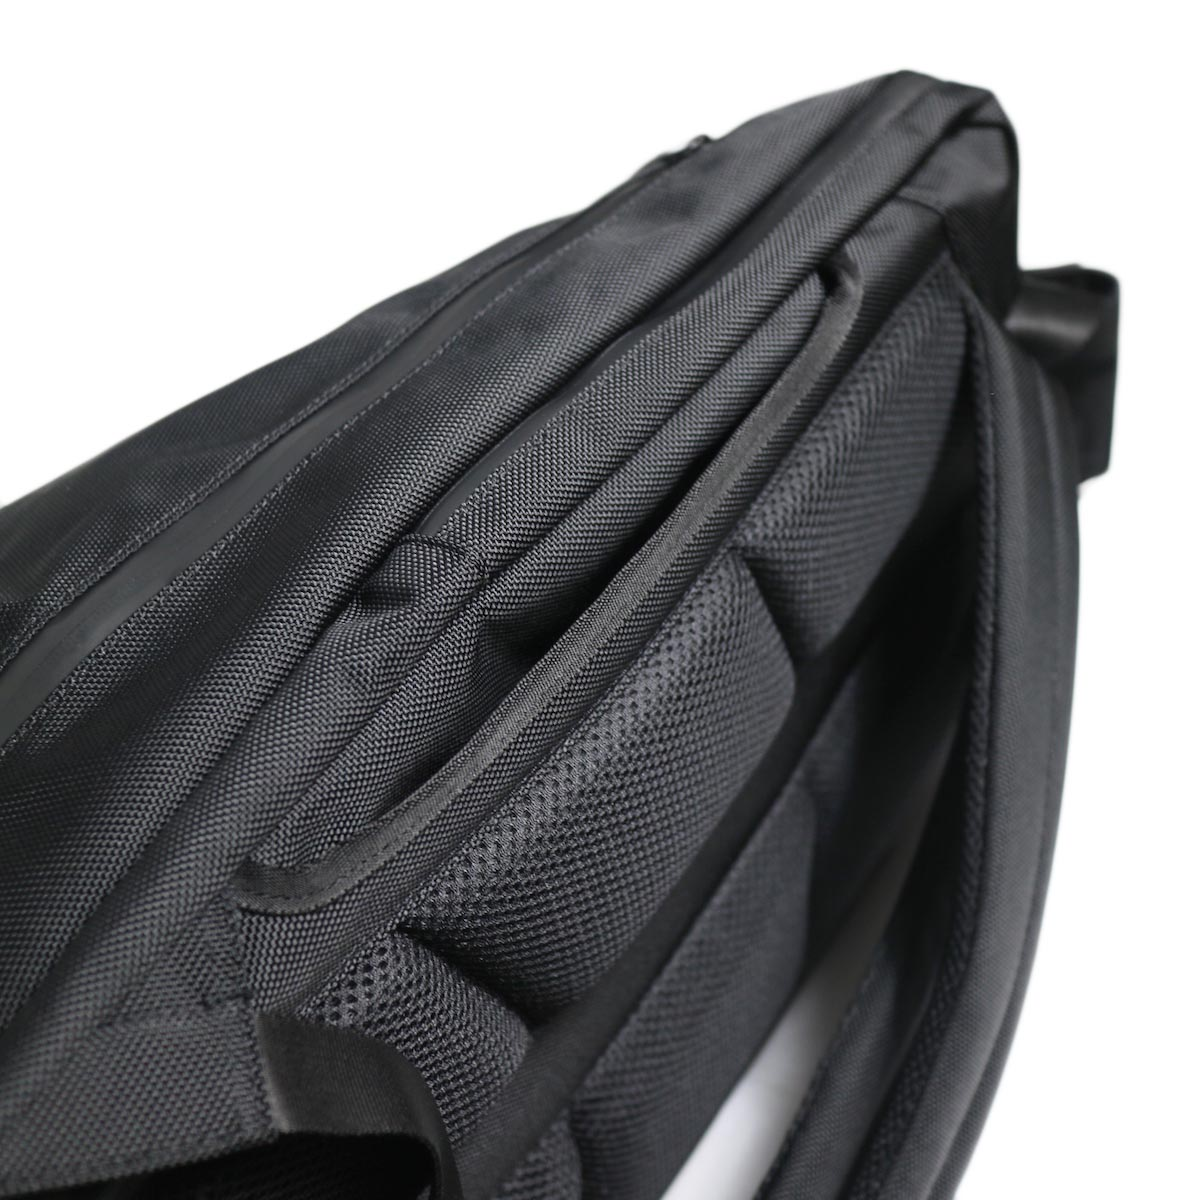 UNIVERSAL PRODUCTS / New Utility Bag -Black 背面ポケット